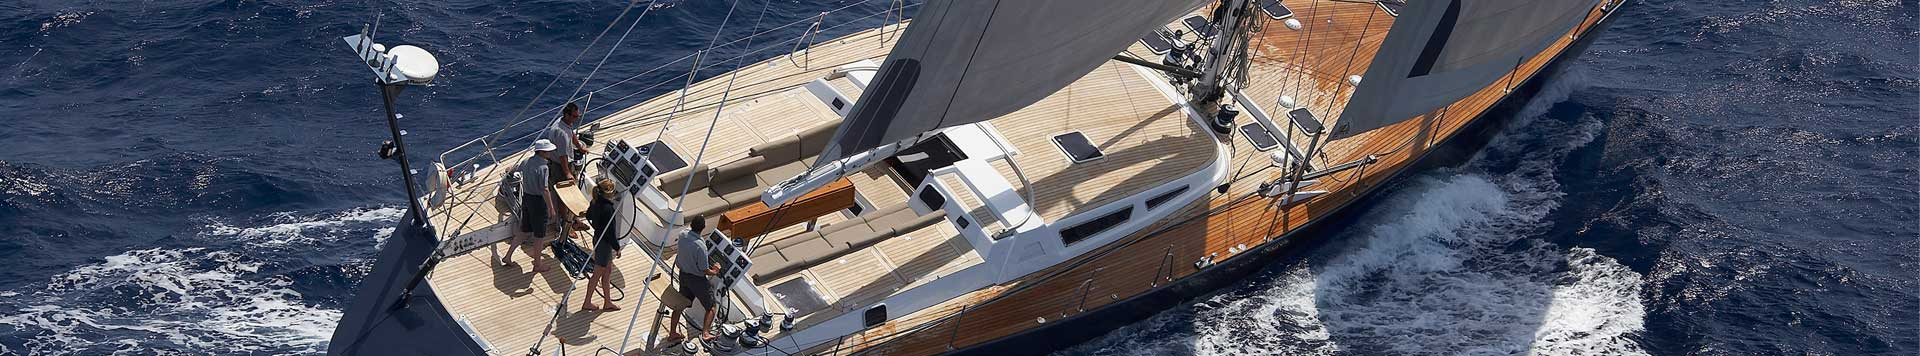 vacanza in barca a vela lusso luxury yacht 82''